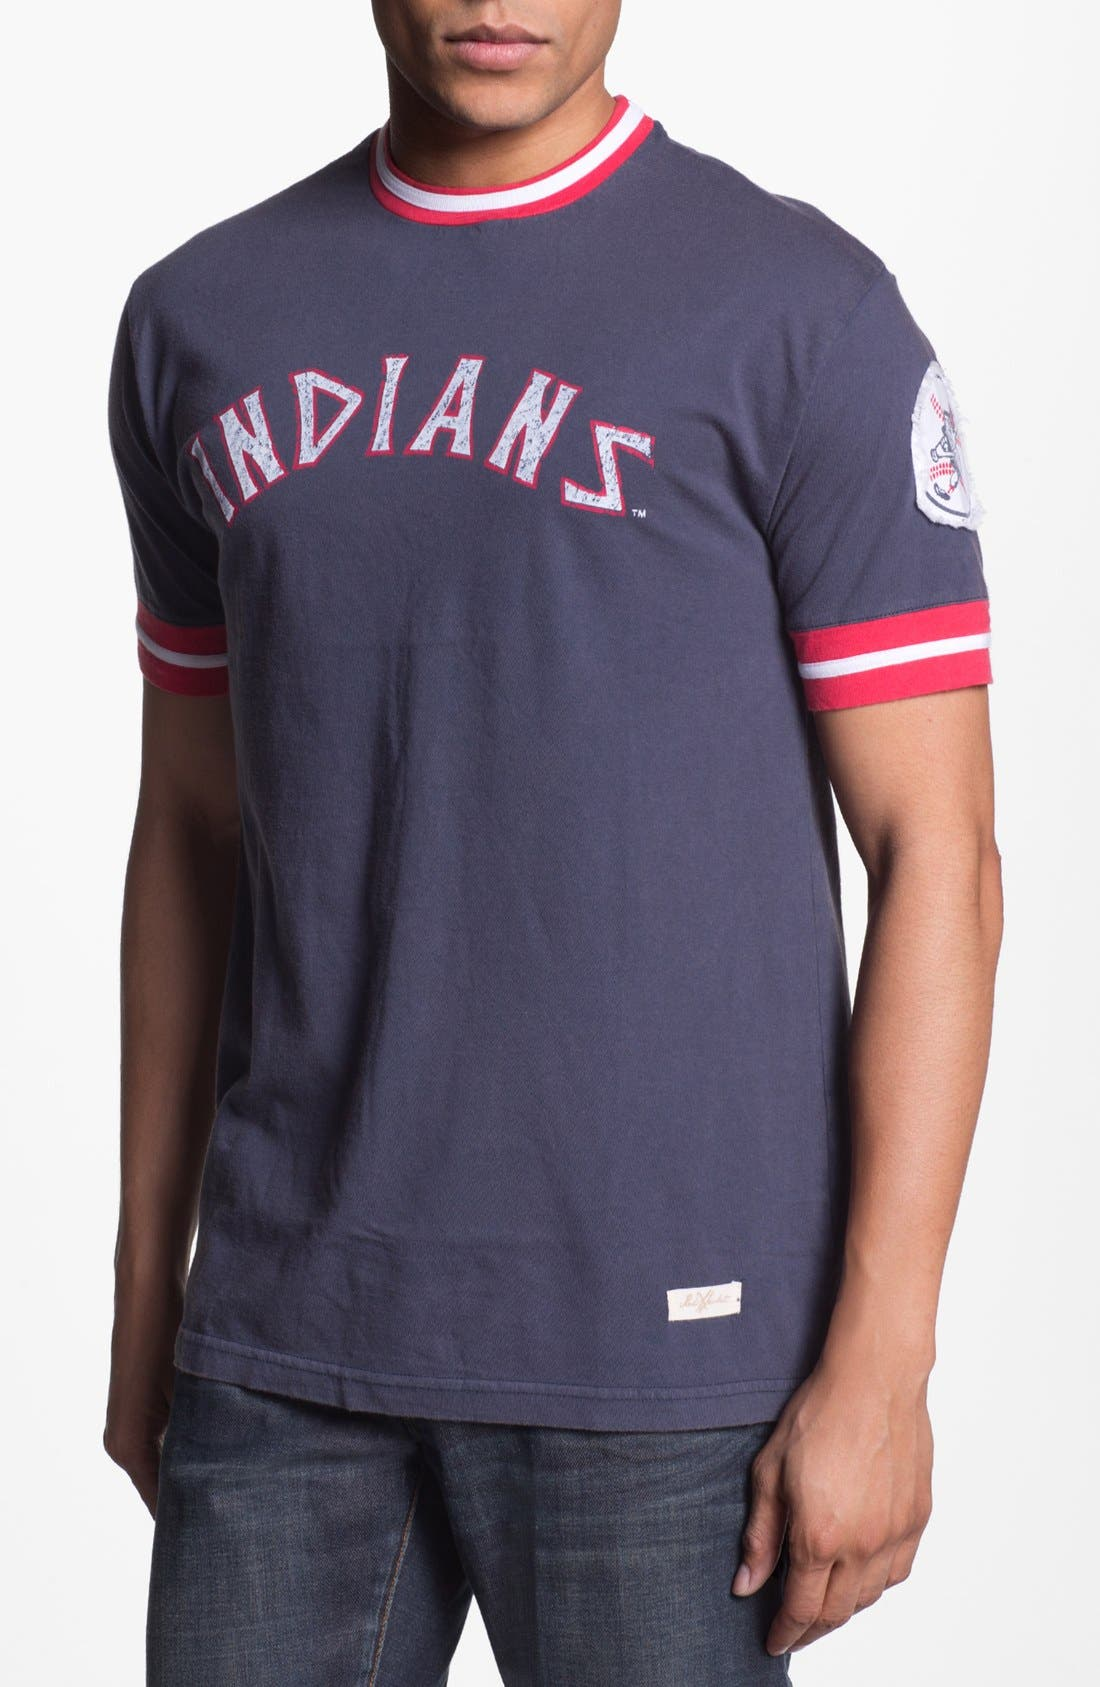 Alternate Image 1 Selected - Red Jacket 'Cleveland Indians' Trim Fit Crewneck Ringer T-Shirt